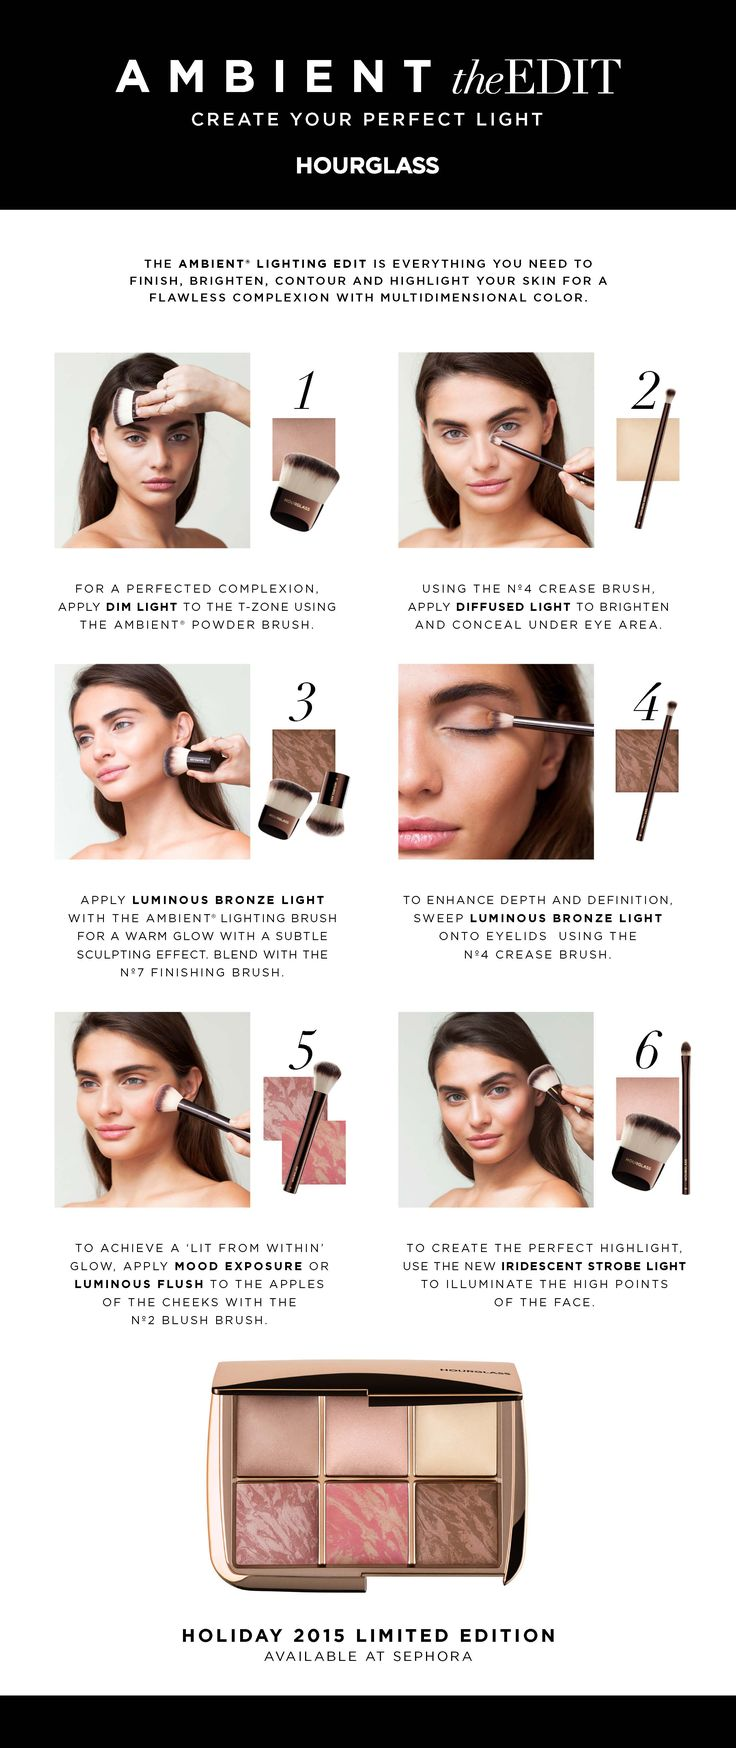 Check out this amazing how-to from #Hourglass using the Ambient Lighting palette. #Sephora #HowTo